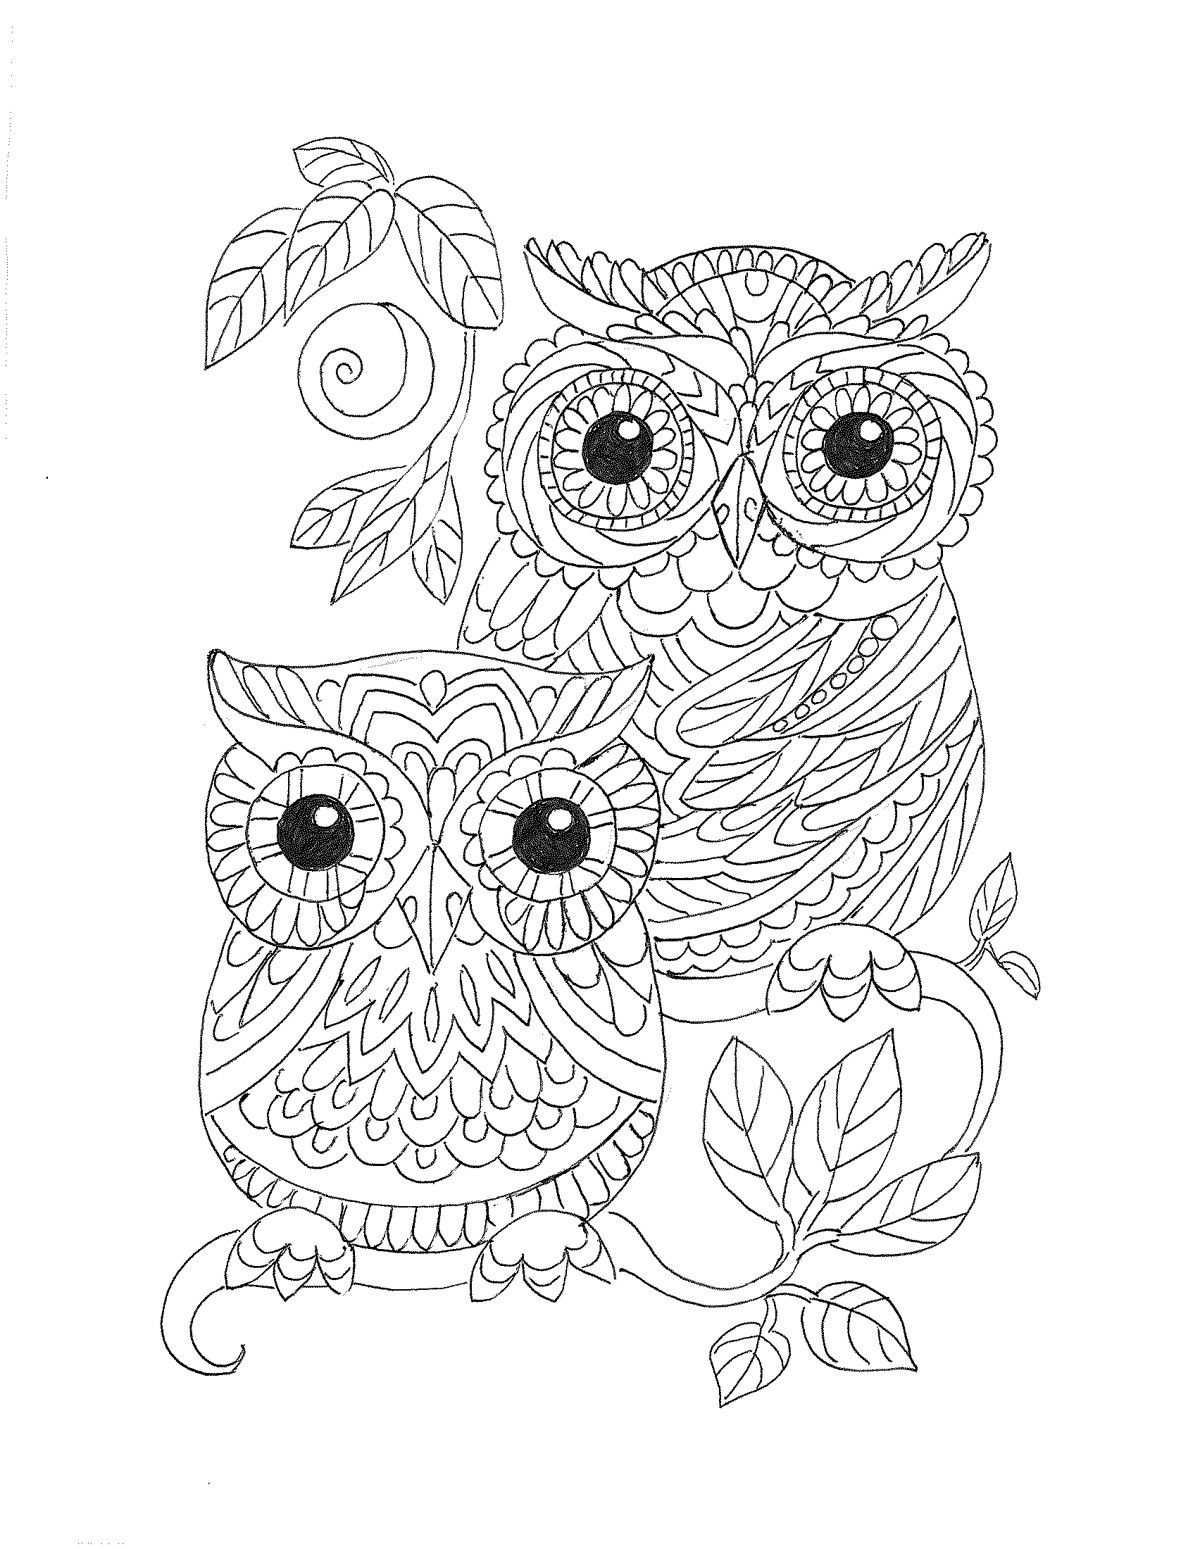 The Artist In You Coloring Book For Adults Kindle Edition By Irina Velman Arts Photography Kindl Owl Coloring Pages Coloring Books Pattern Coloring Pages